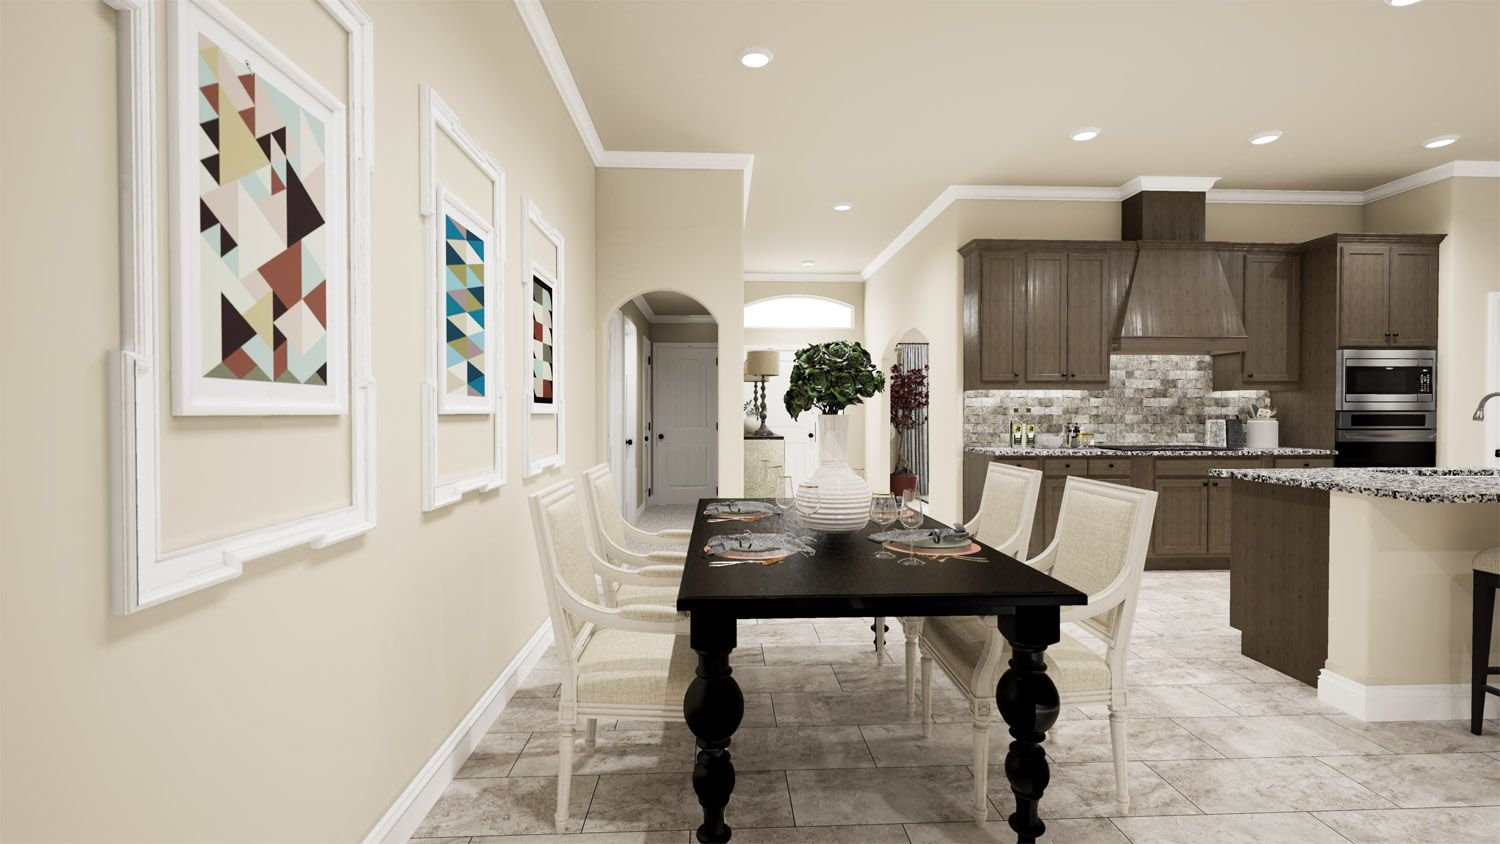 Kitchen featured in the 2500 Series By Schuber Mitchell Homes in Joplin, MO